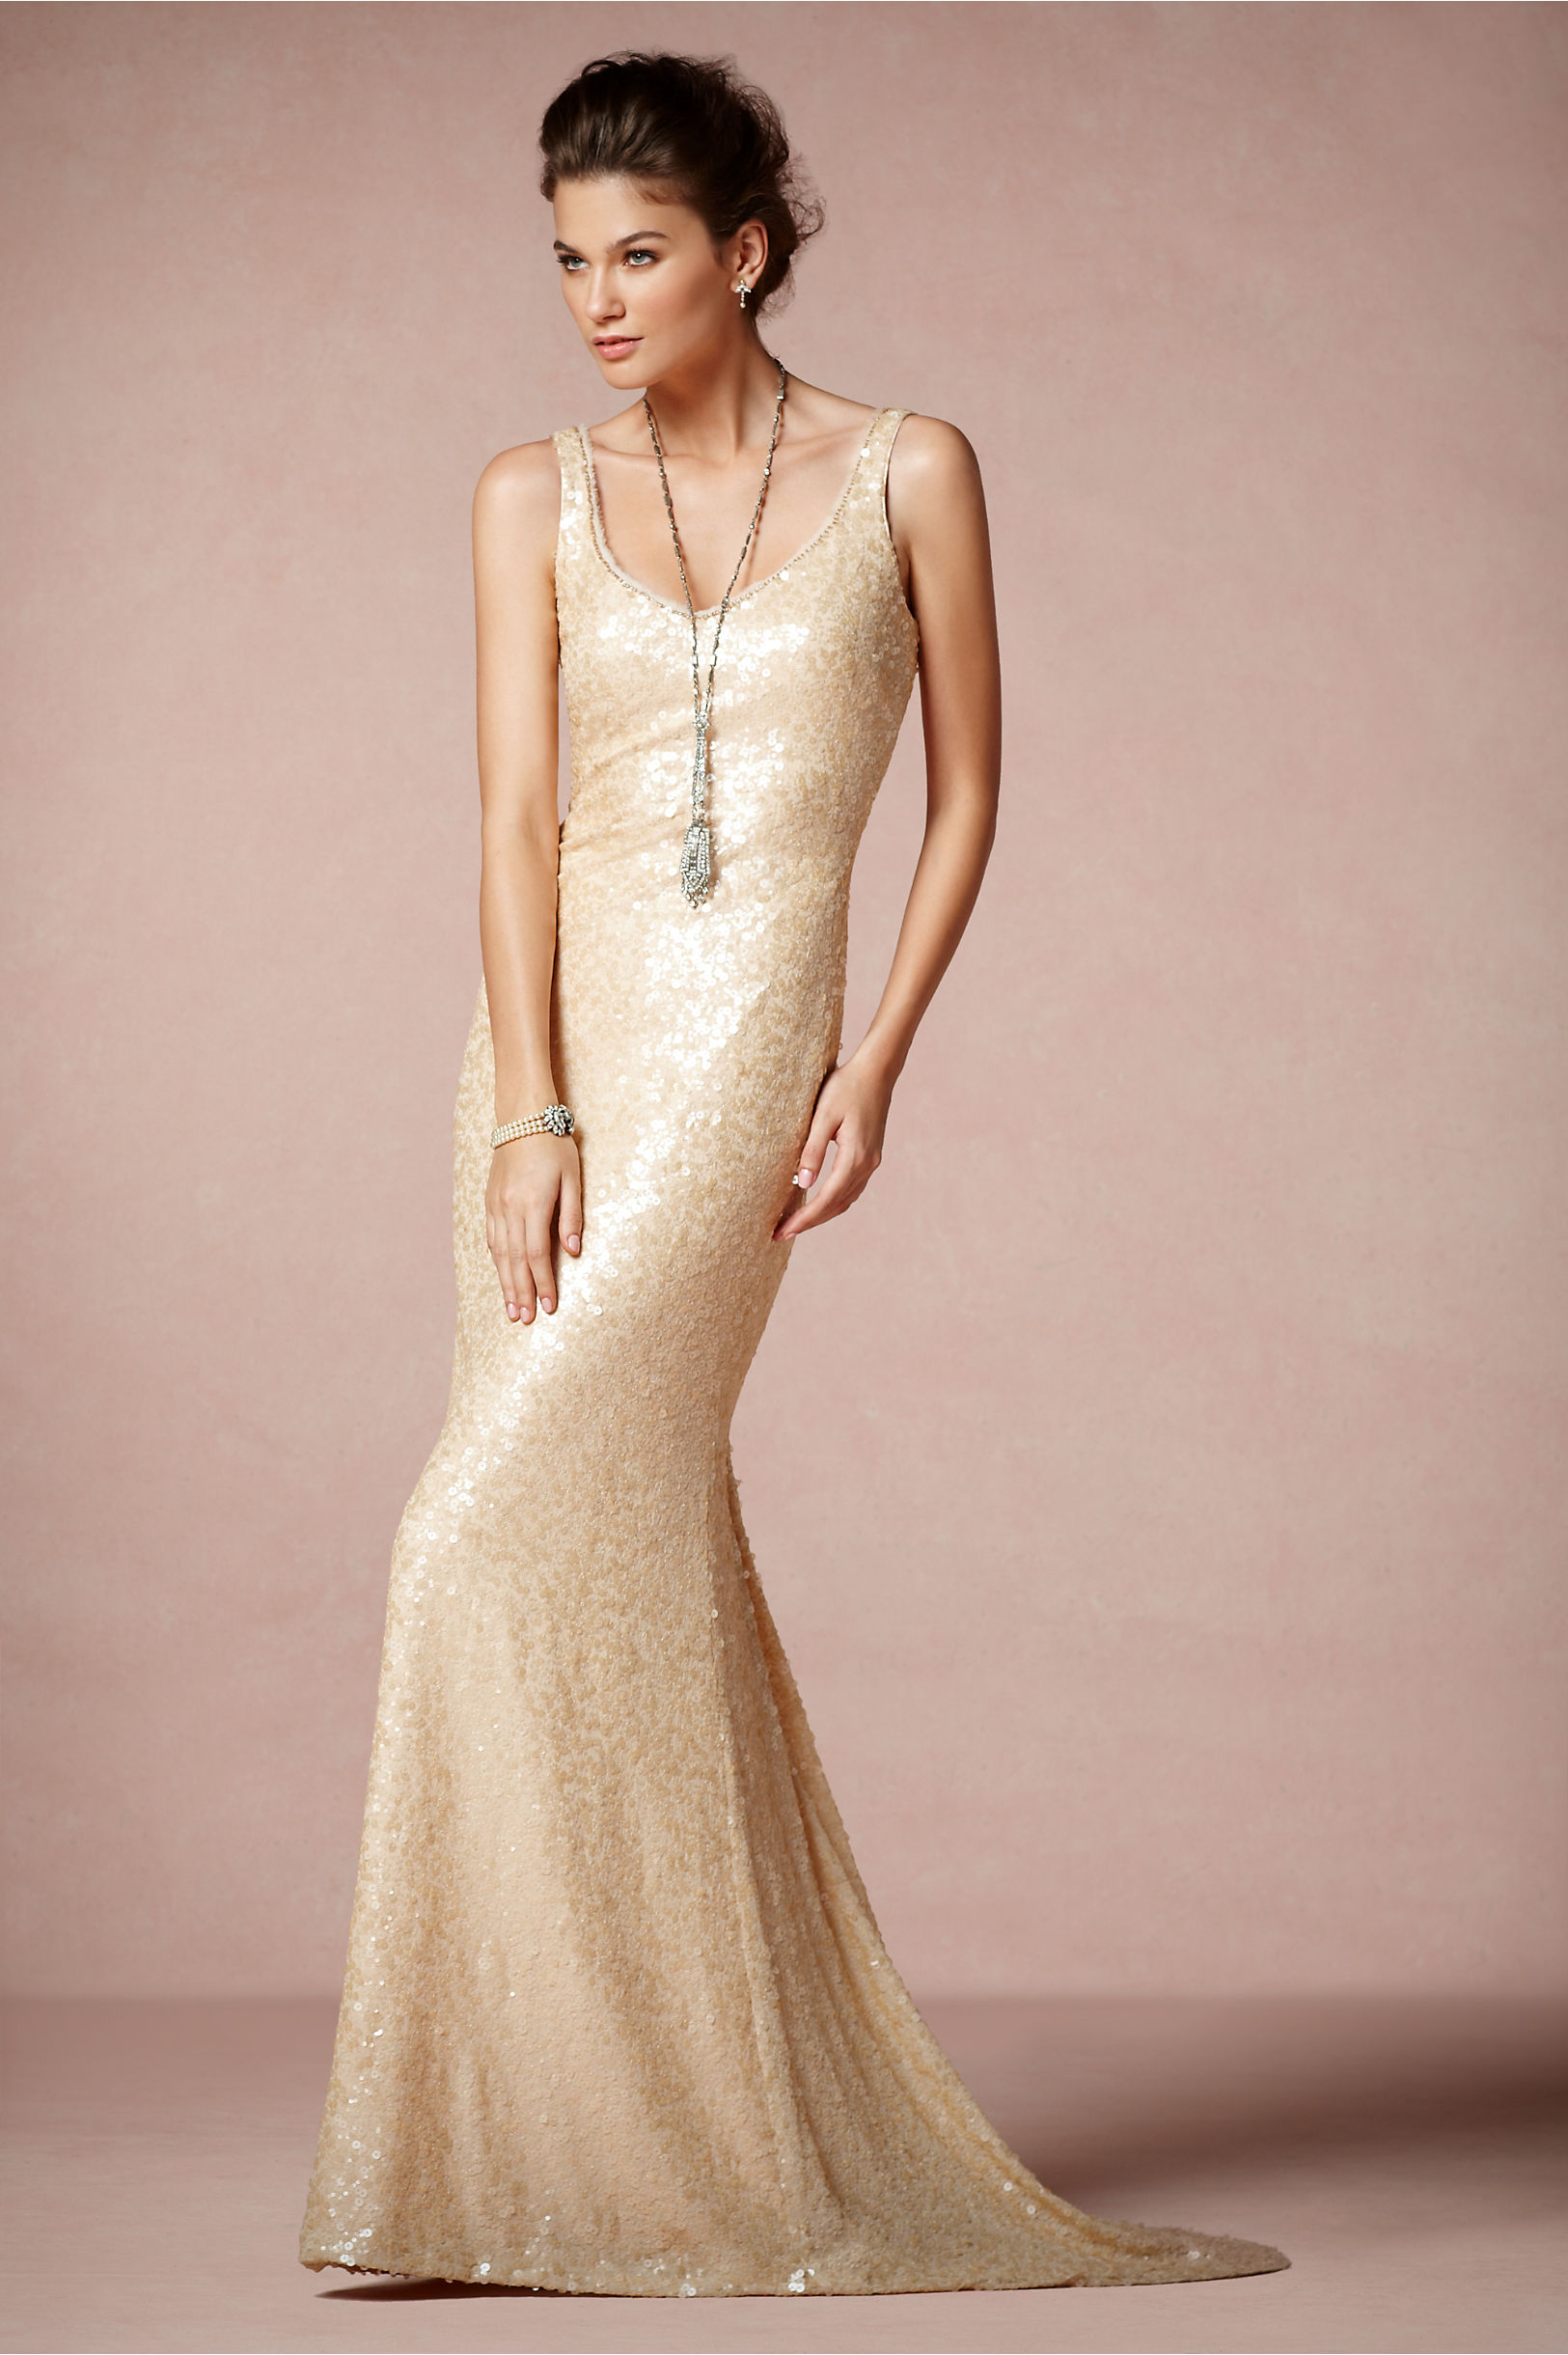 Cyprium Gown in Bride | BHLDN